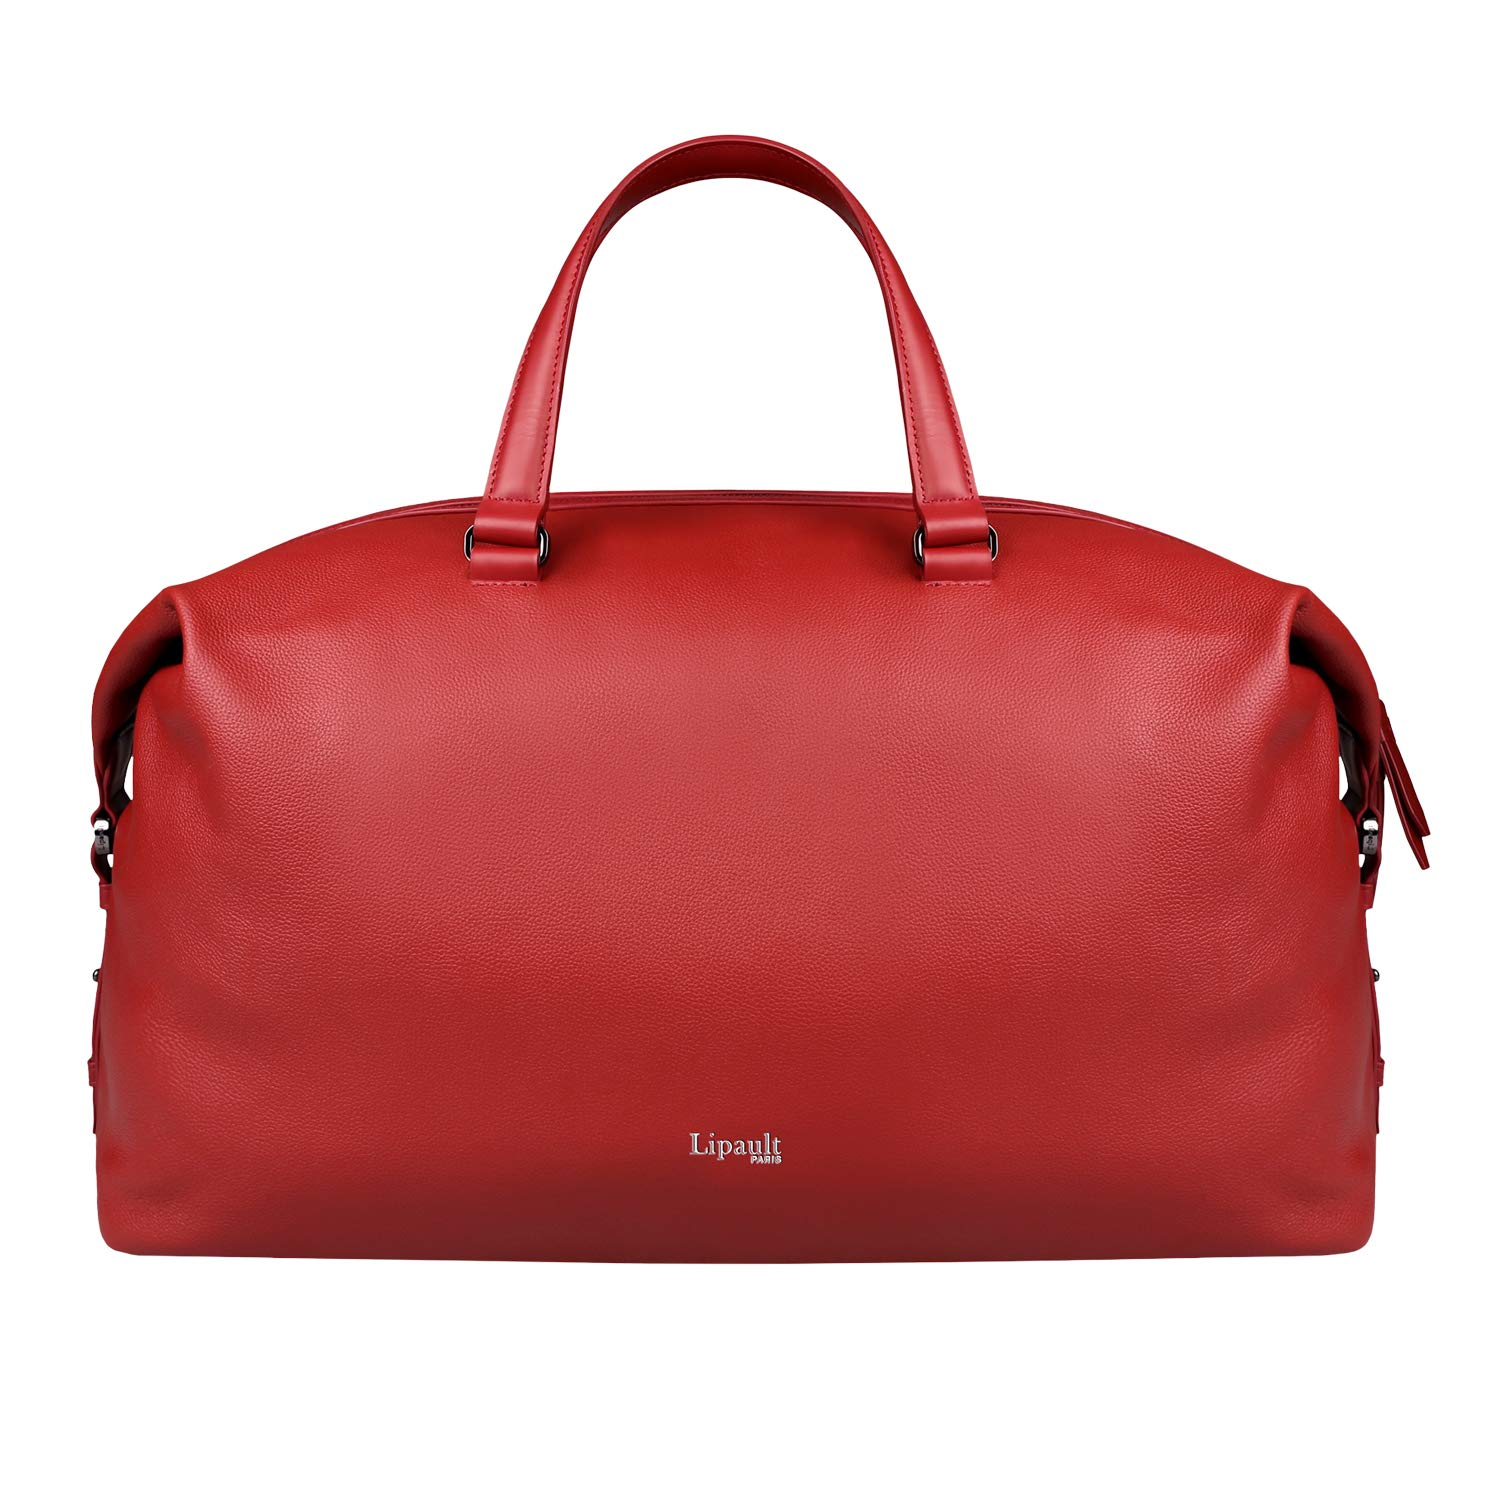 Lipault - Plume Elegance Weekend Bag - Top Handle Shoulder Overnight Travel Duffel Luggage for Women - Ruby